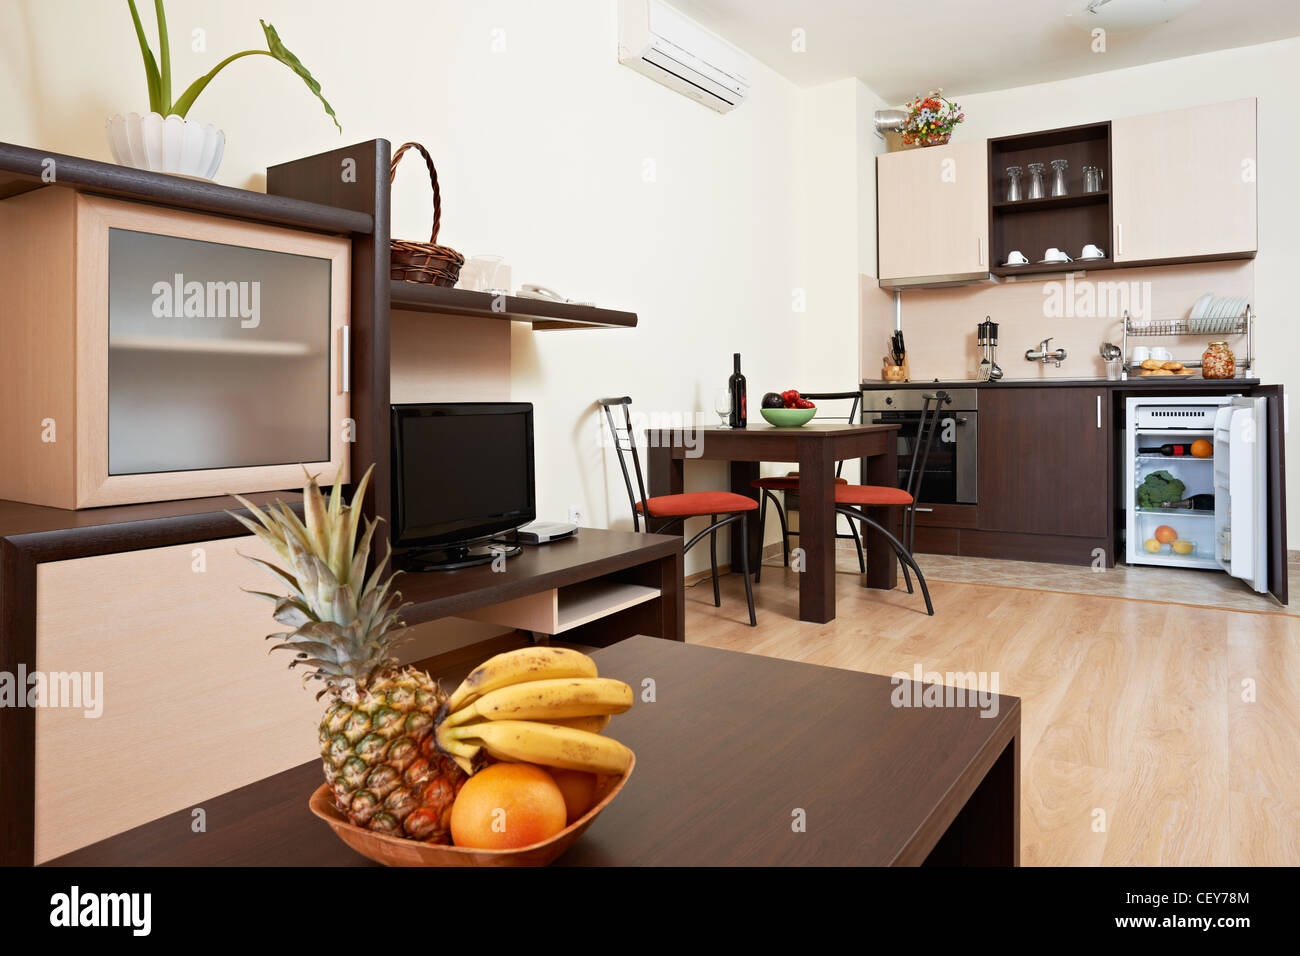 Design And Furniture Example Of Living Room With Kitchen Box In Modern  Apart Hotel